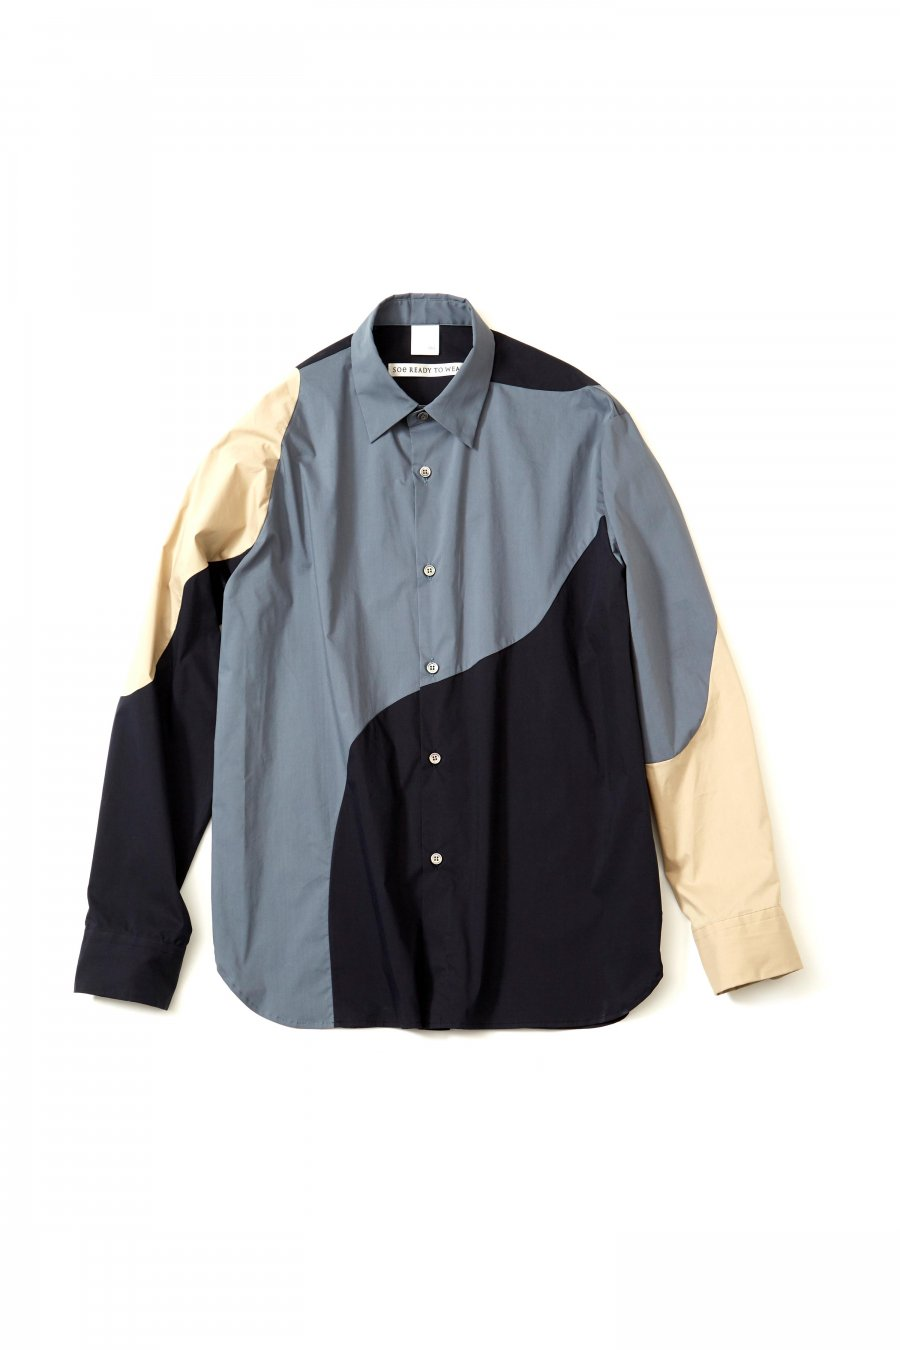 soe  3CC Shirt Collaborated With Pre_ (GRAY/NAVY/BEIGE)<img class='new_mark_img2' src='https://img.shop-pro.jp/img/new/icons15.gif' style='border:none;display:inline;margin:0px;padding:0px;width:auto;' />